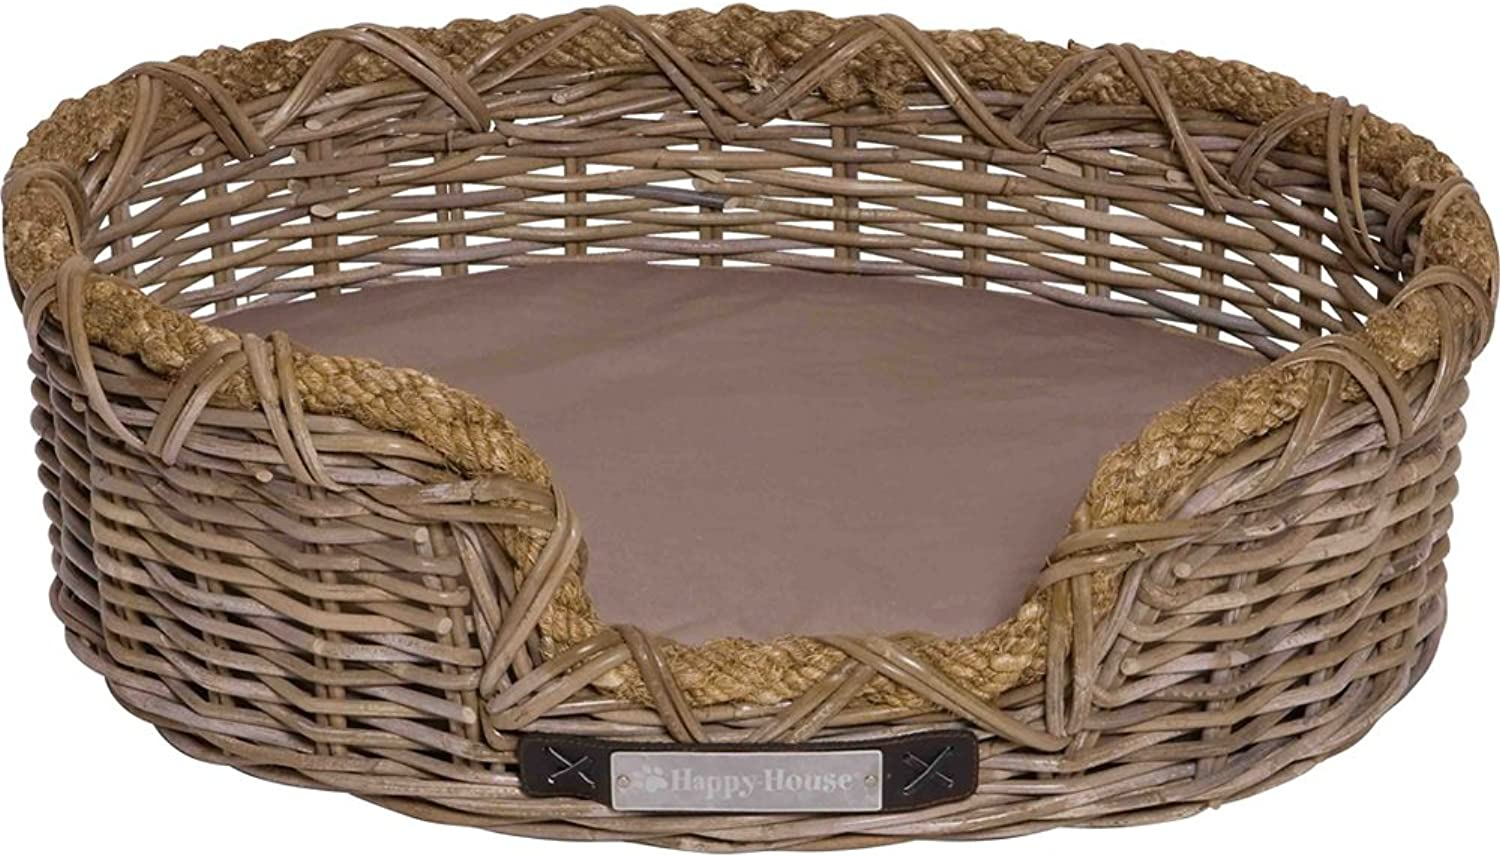 HappyHouse Oval Rattan Basket with Rope, Small